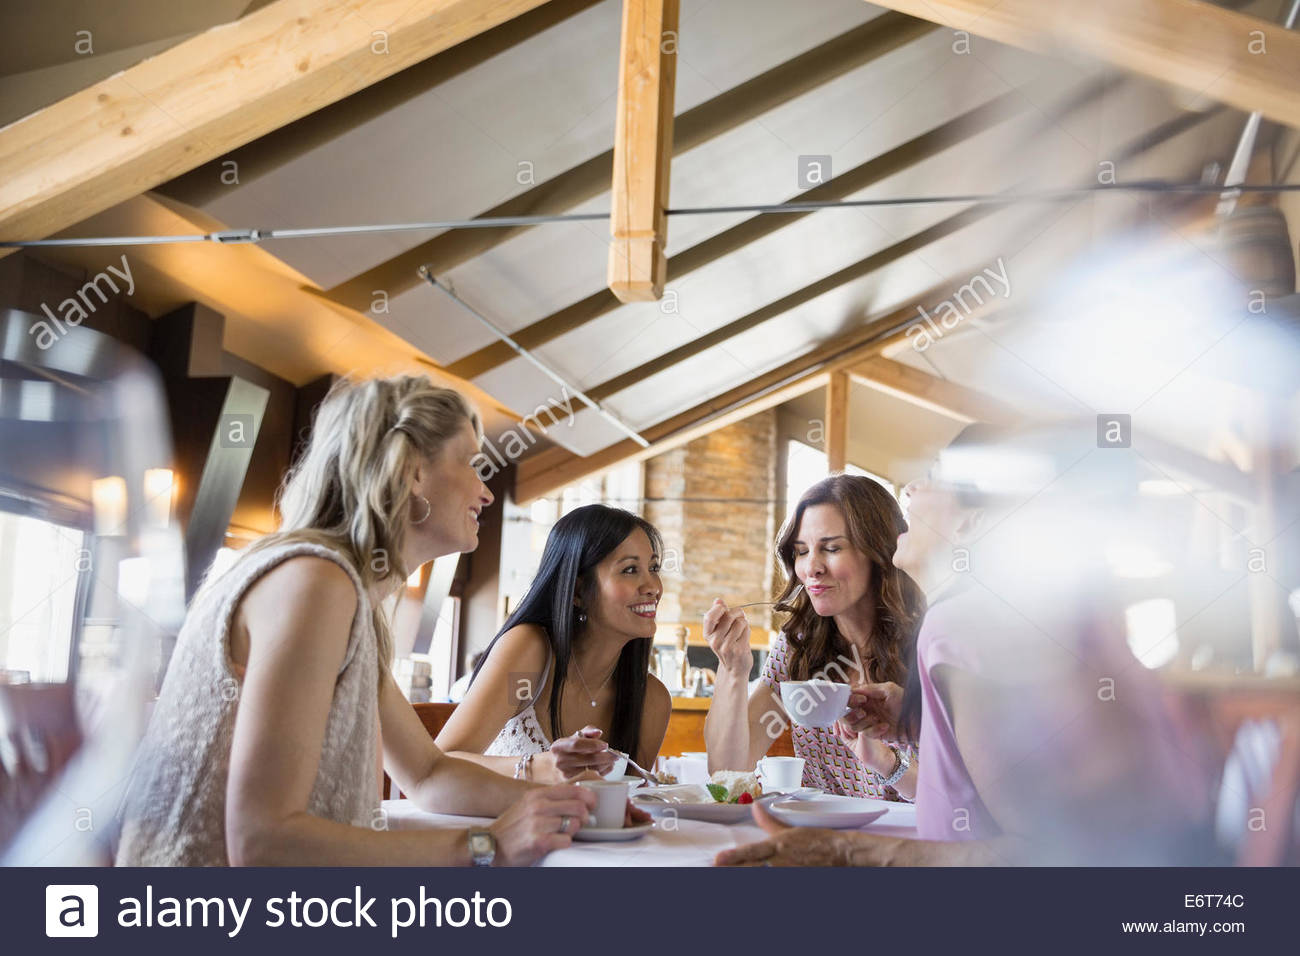 Women eating together in restaurant - Stock Image